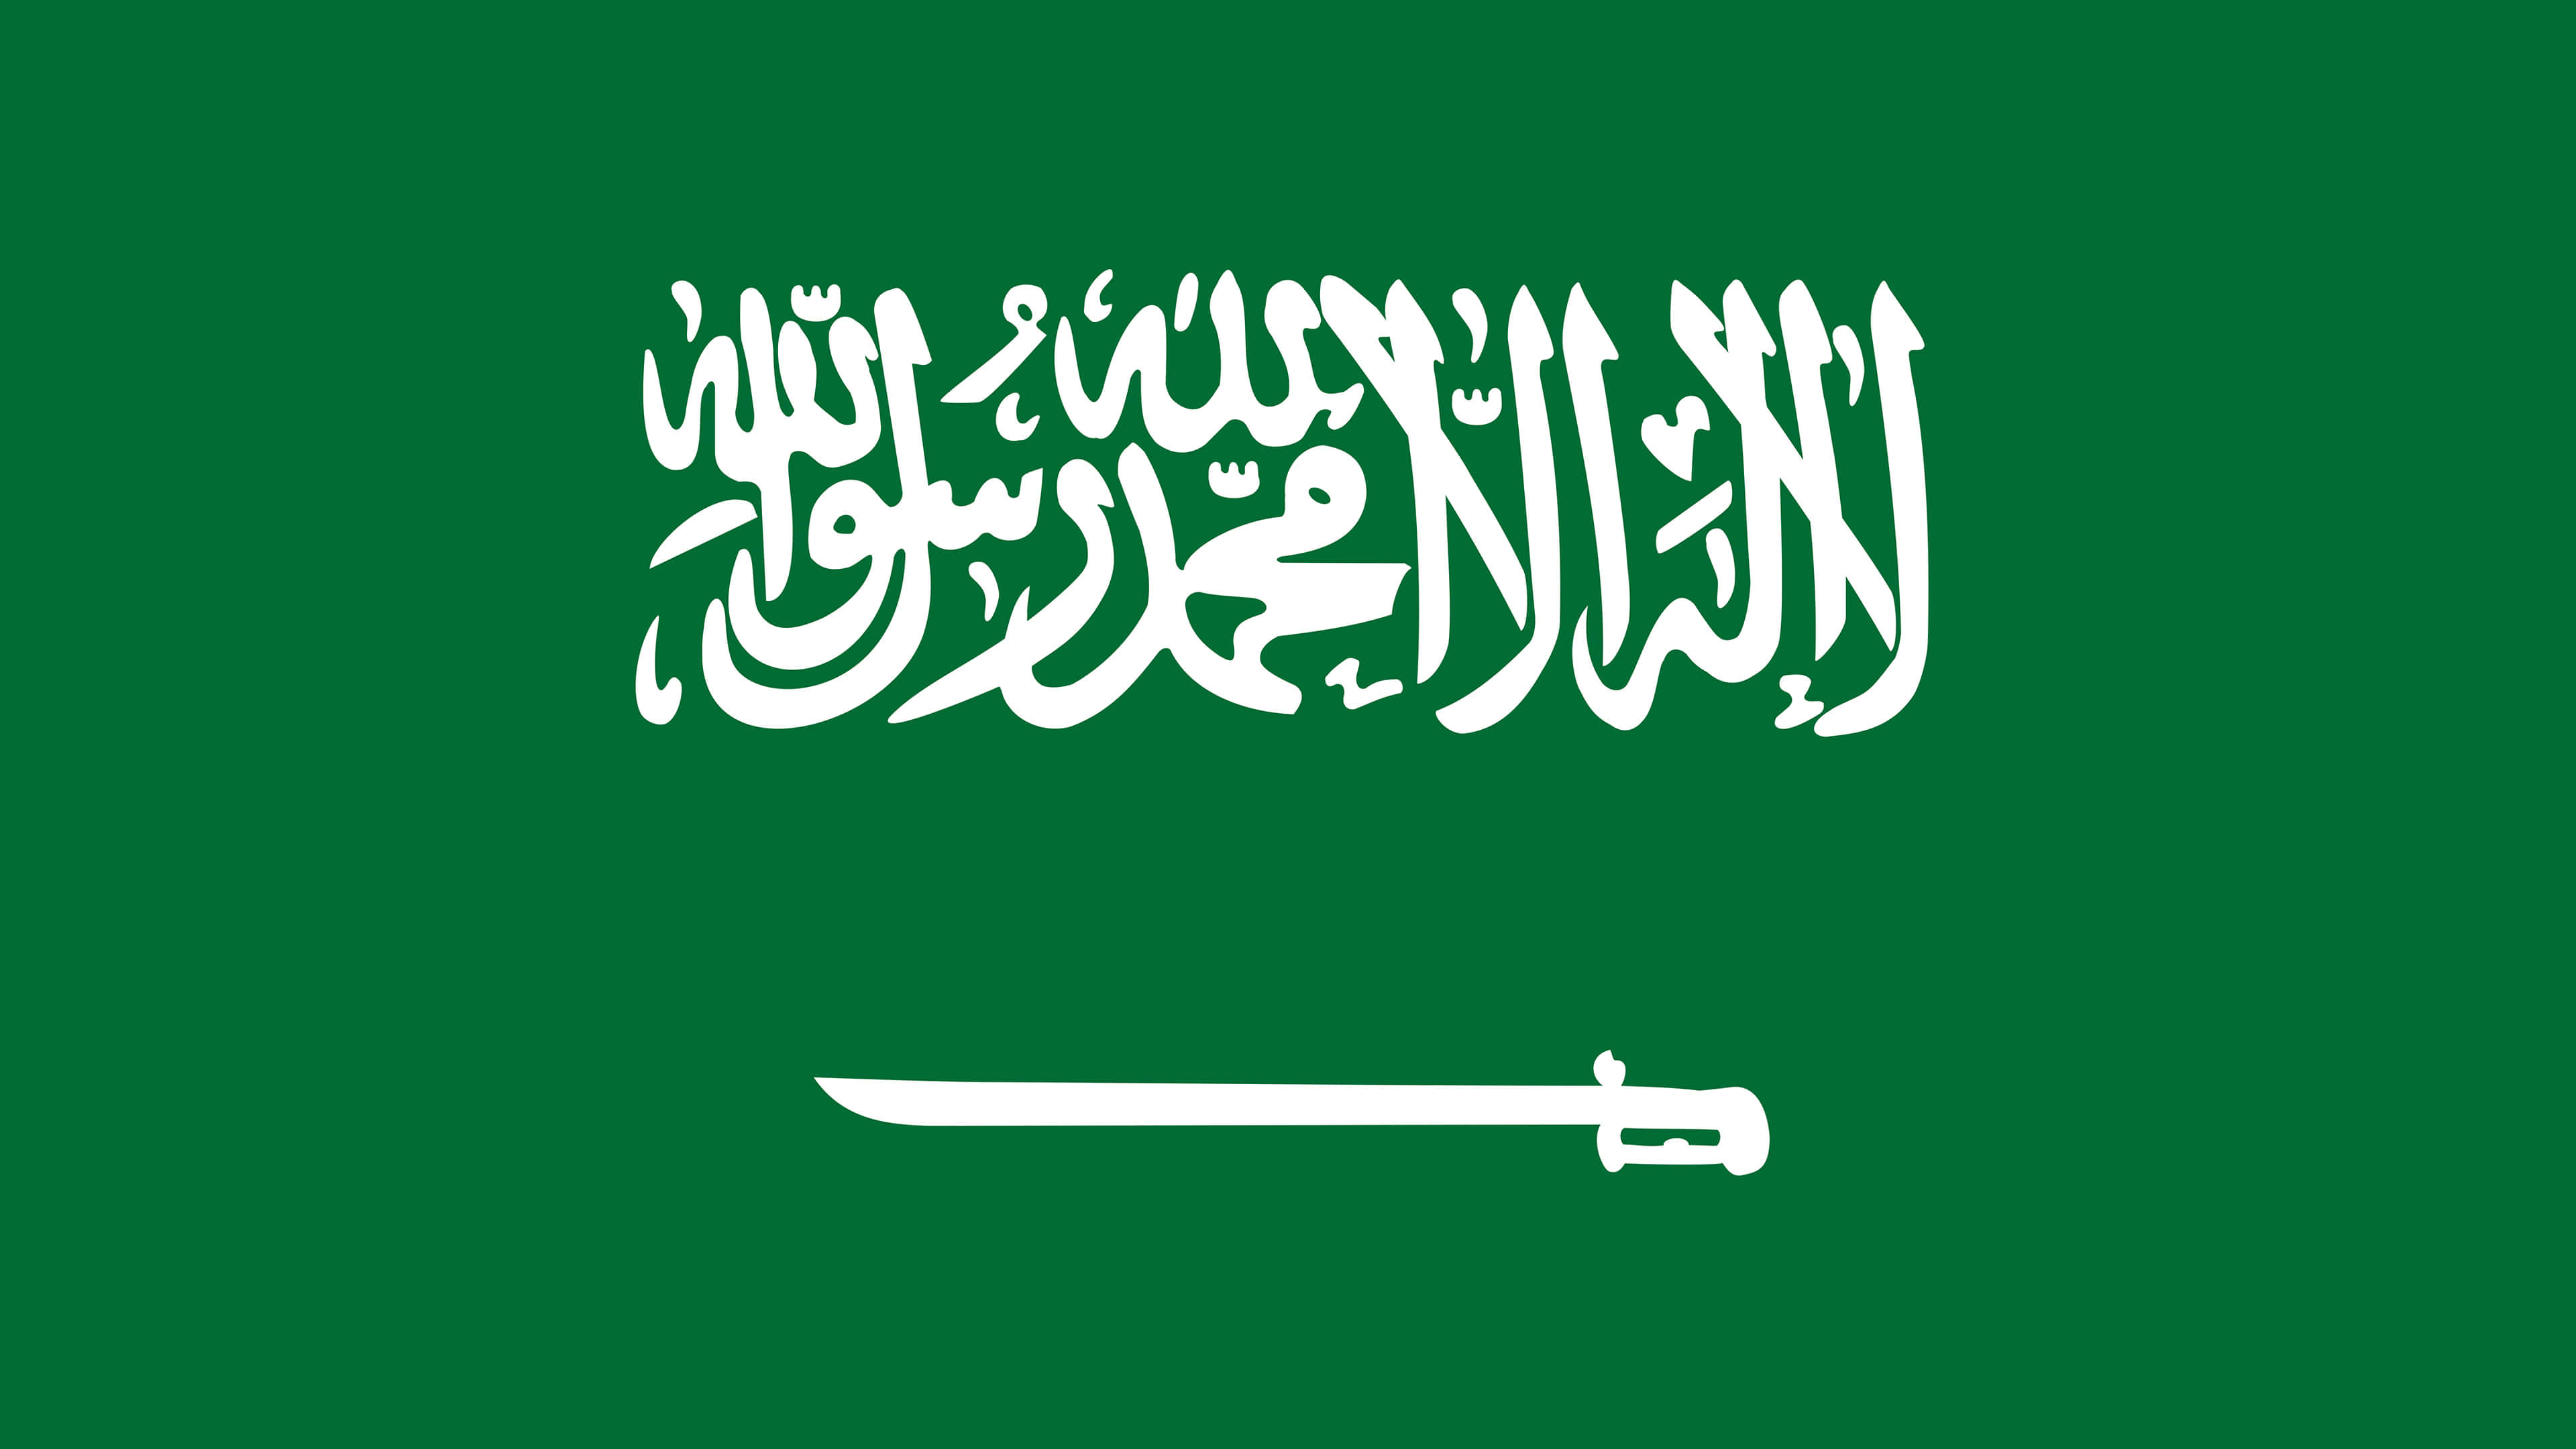 saudi arabia flag uhd 4k wallpaper